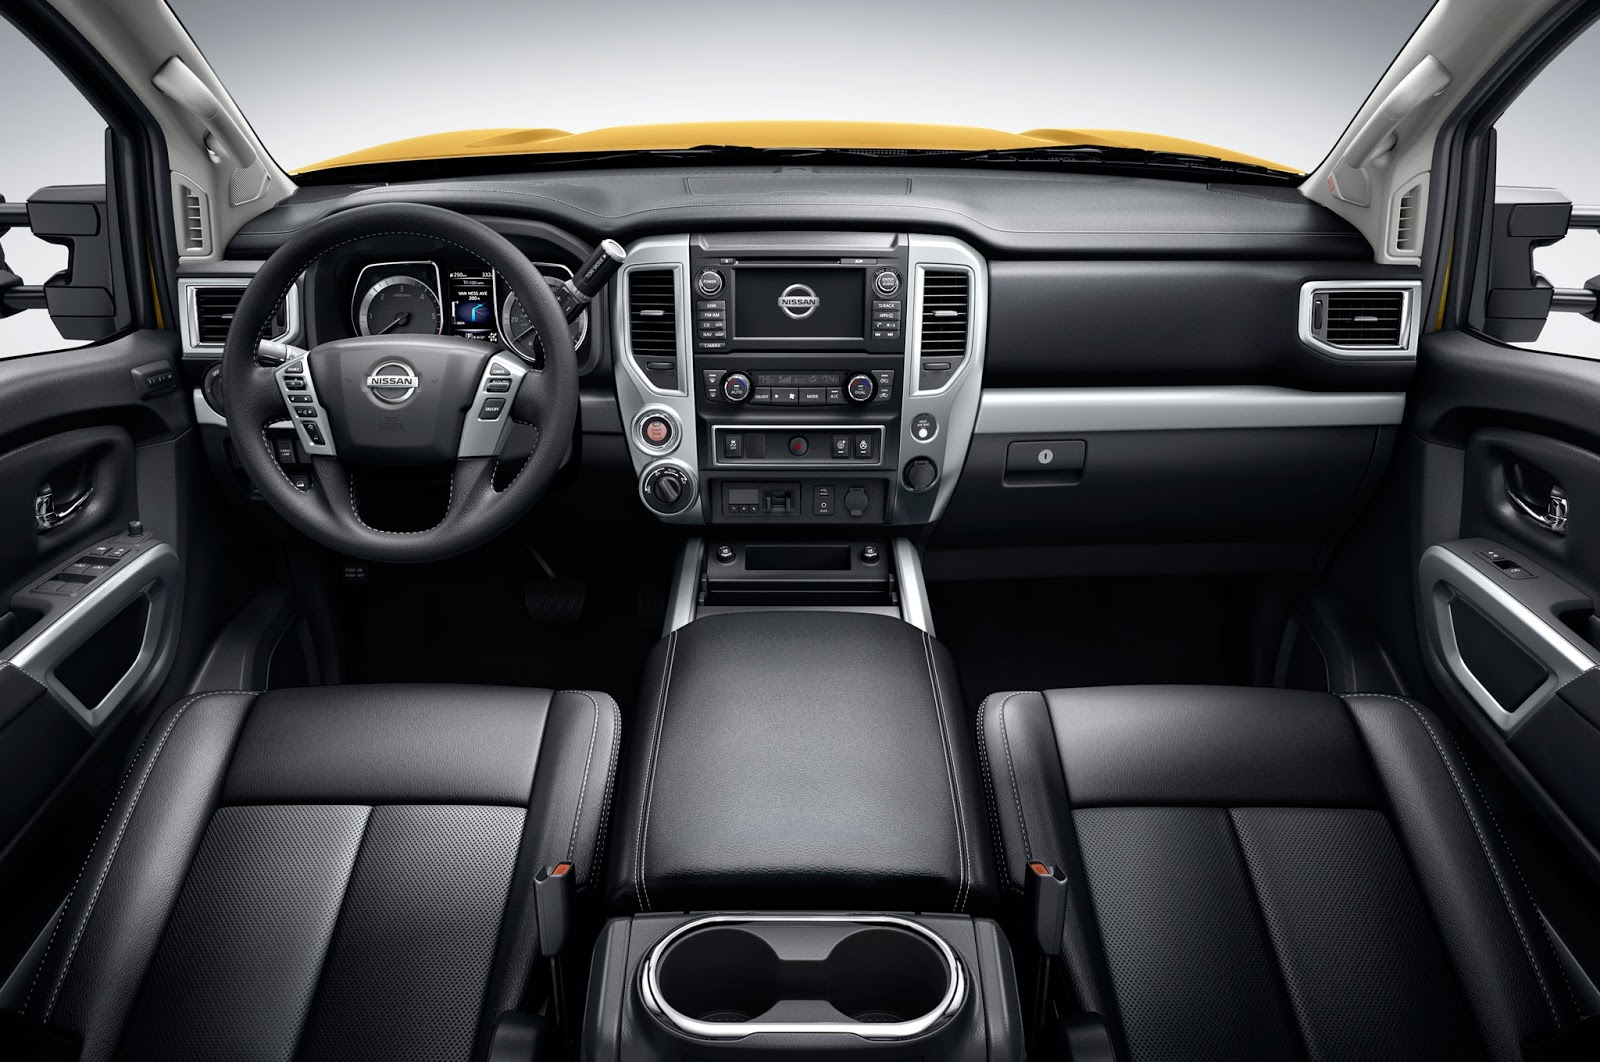 Canada autocar 2016 nissan navara np300 specs features performance review